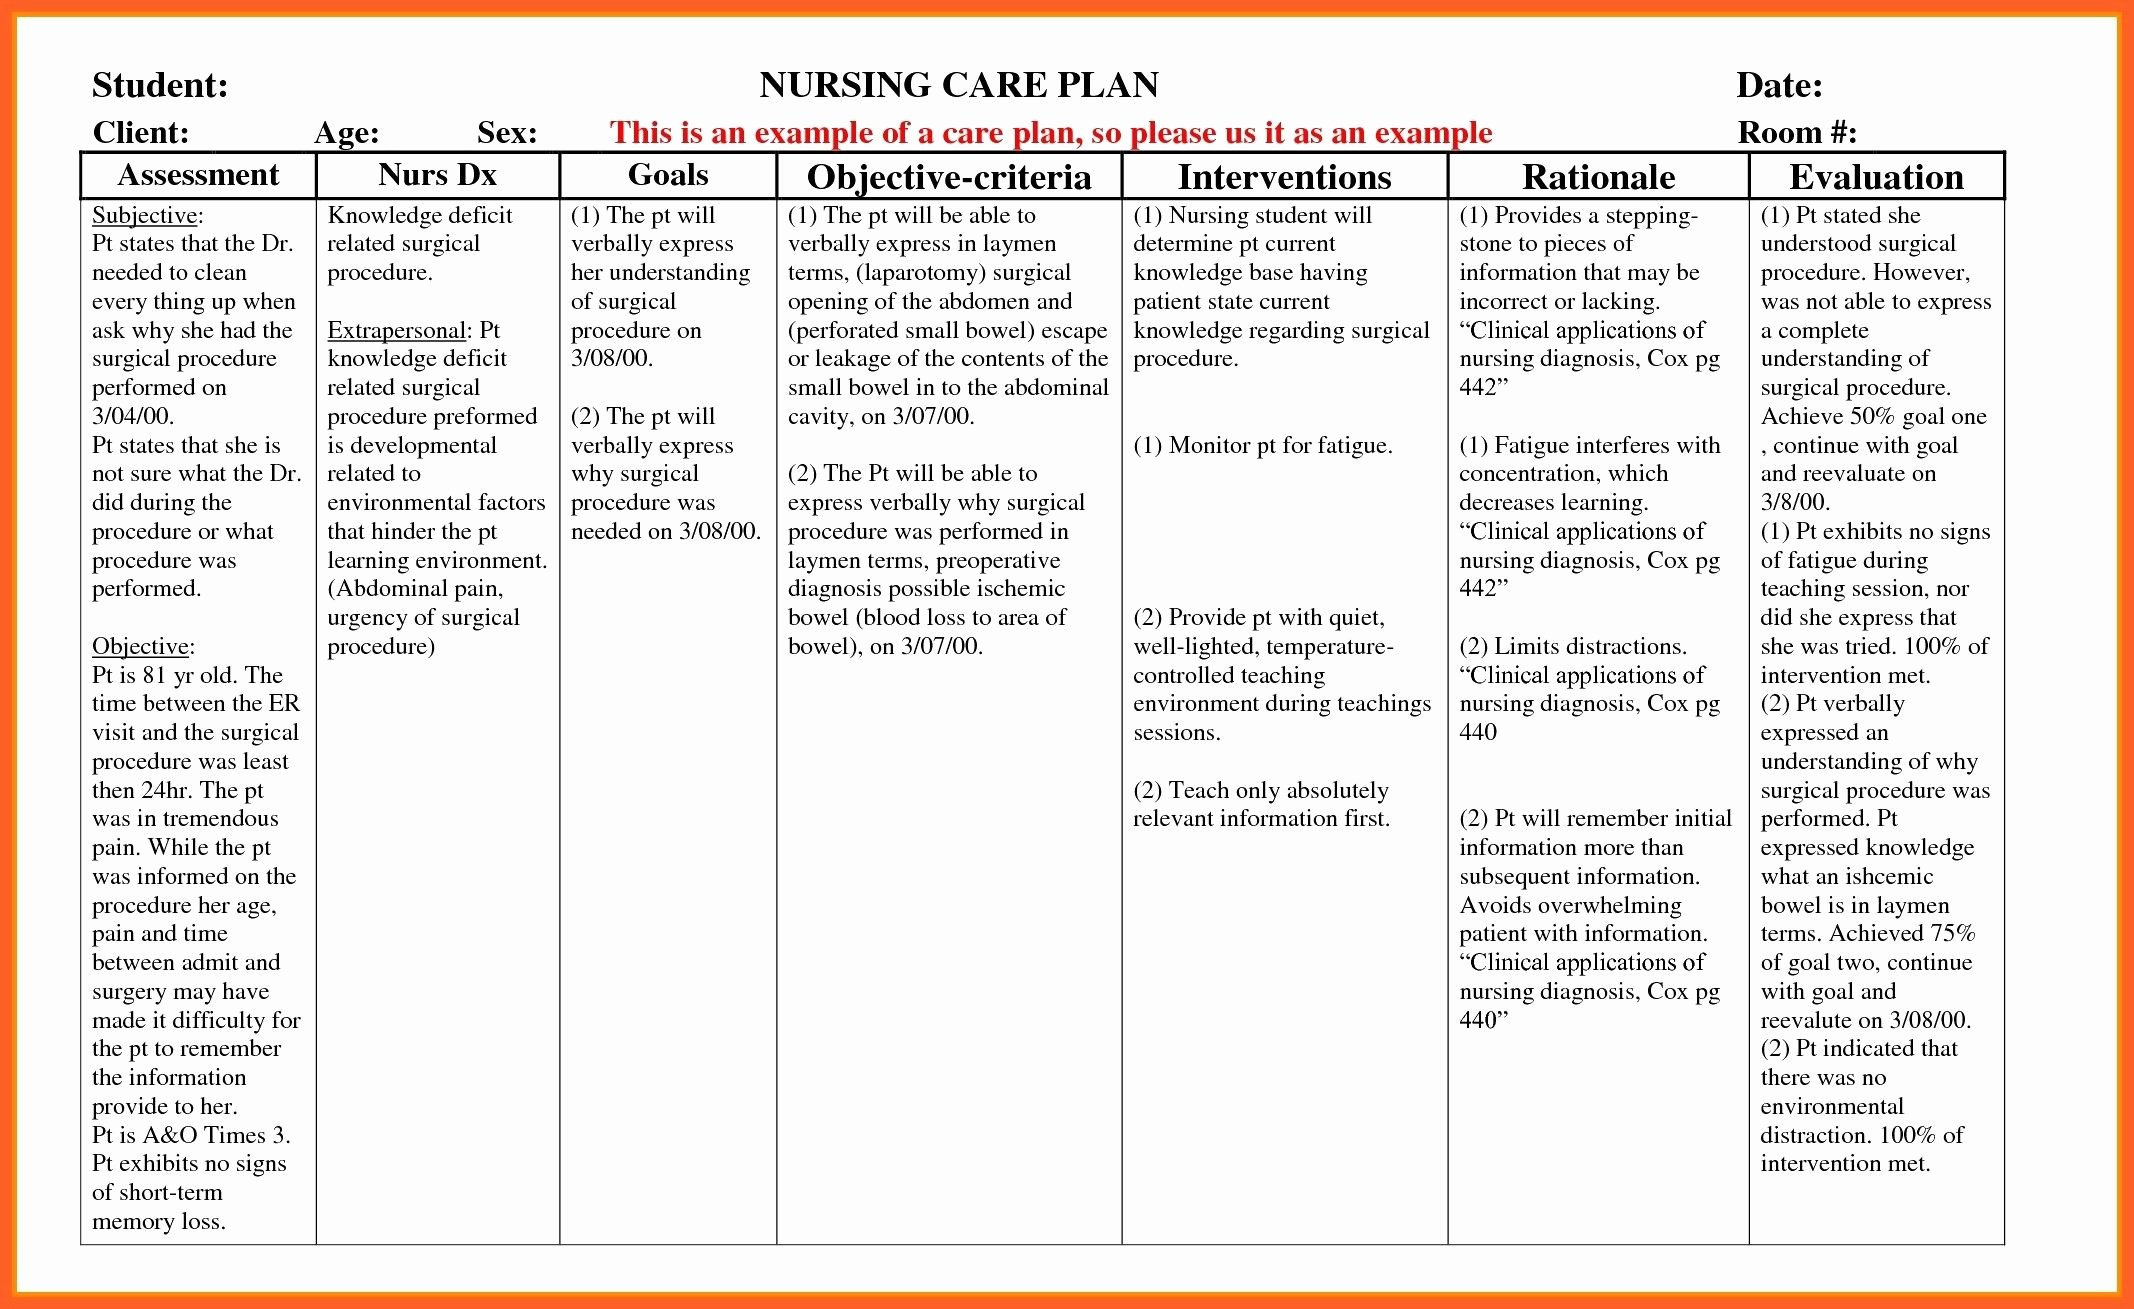 Nursing Education Plan Template Beautiful Example Care Plan Template for Elderly Nursing Home